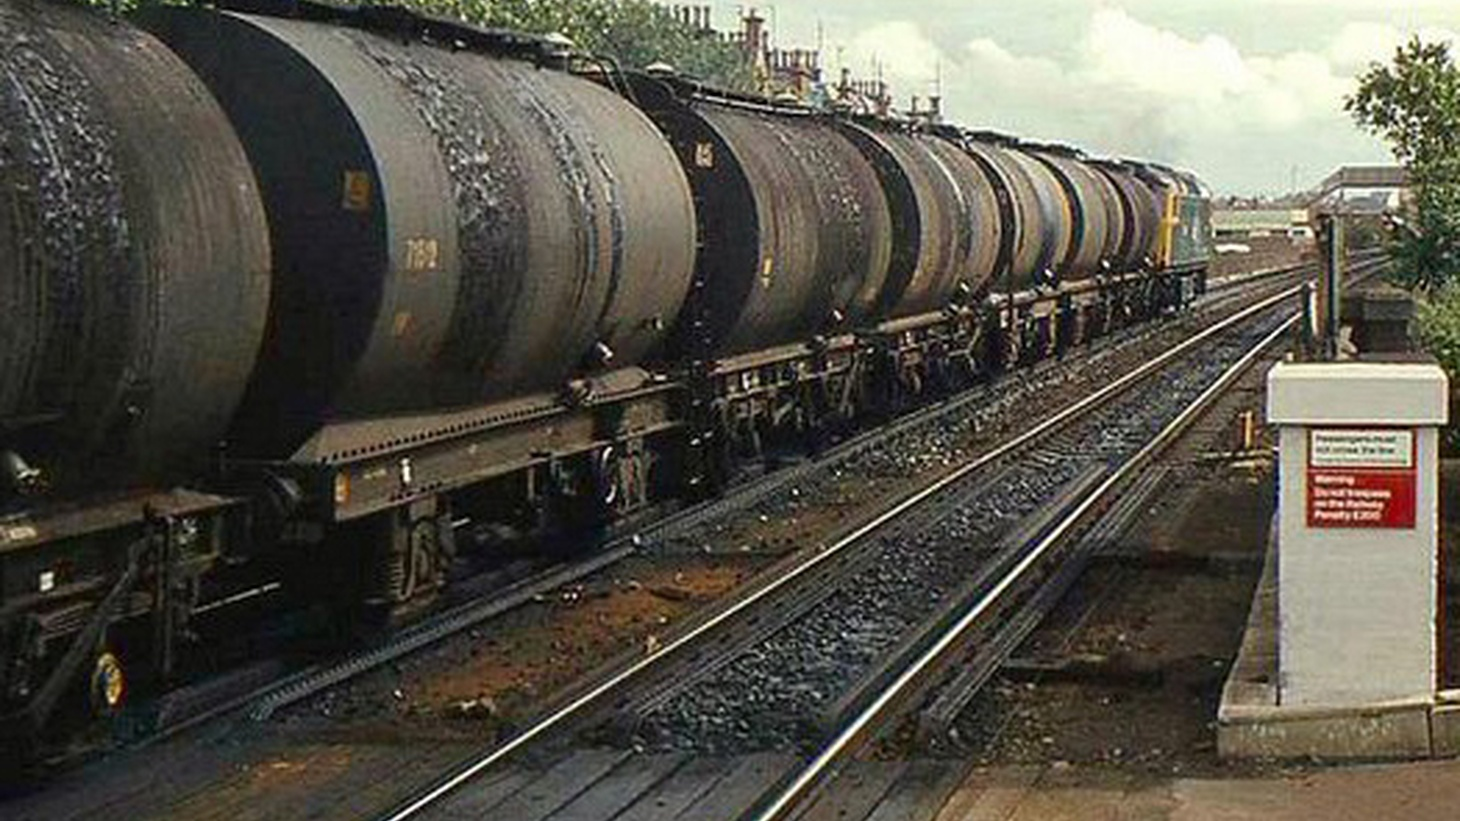 Right now, just 1% of the crude oil refined in California gets here by rail. In two years it'll be 25%, on trains that haul 100 tank cars at a time. But state officials are not disclosing details about train movements in a report provided by railroad companies.